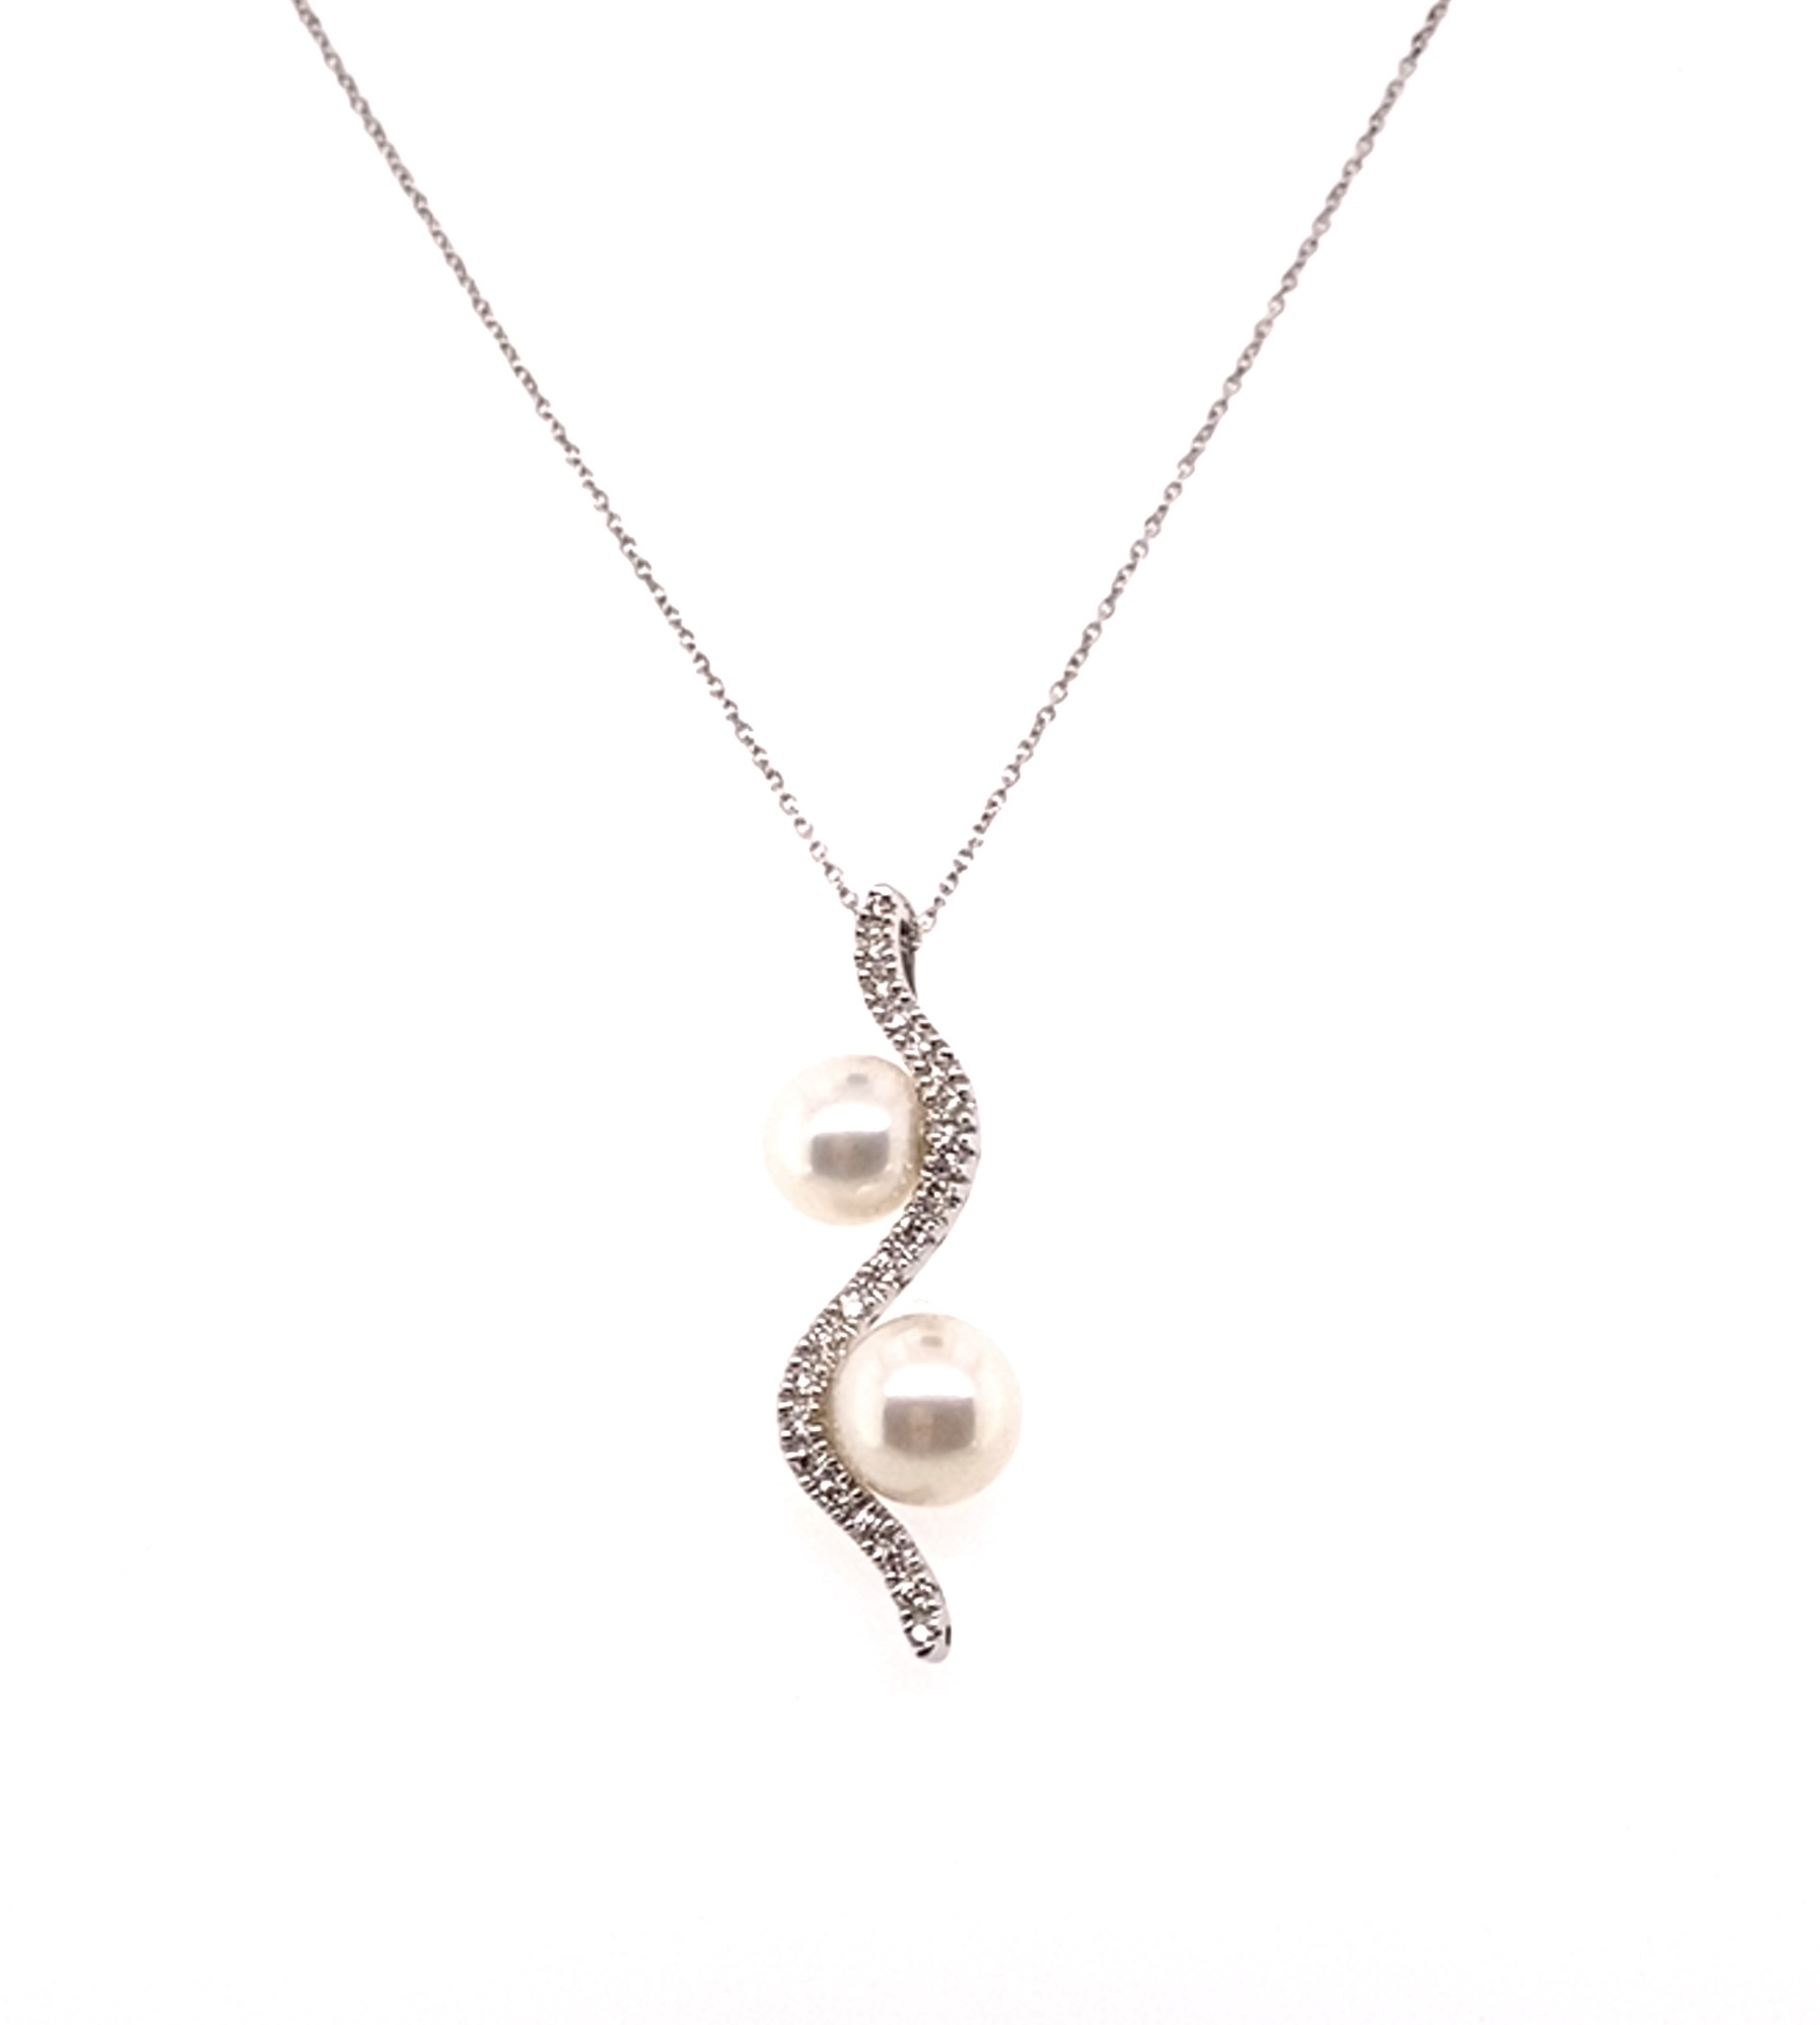 An 18ct White Gold Double Cultured Pearl and Diamond Pendant